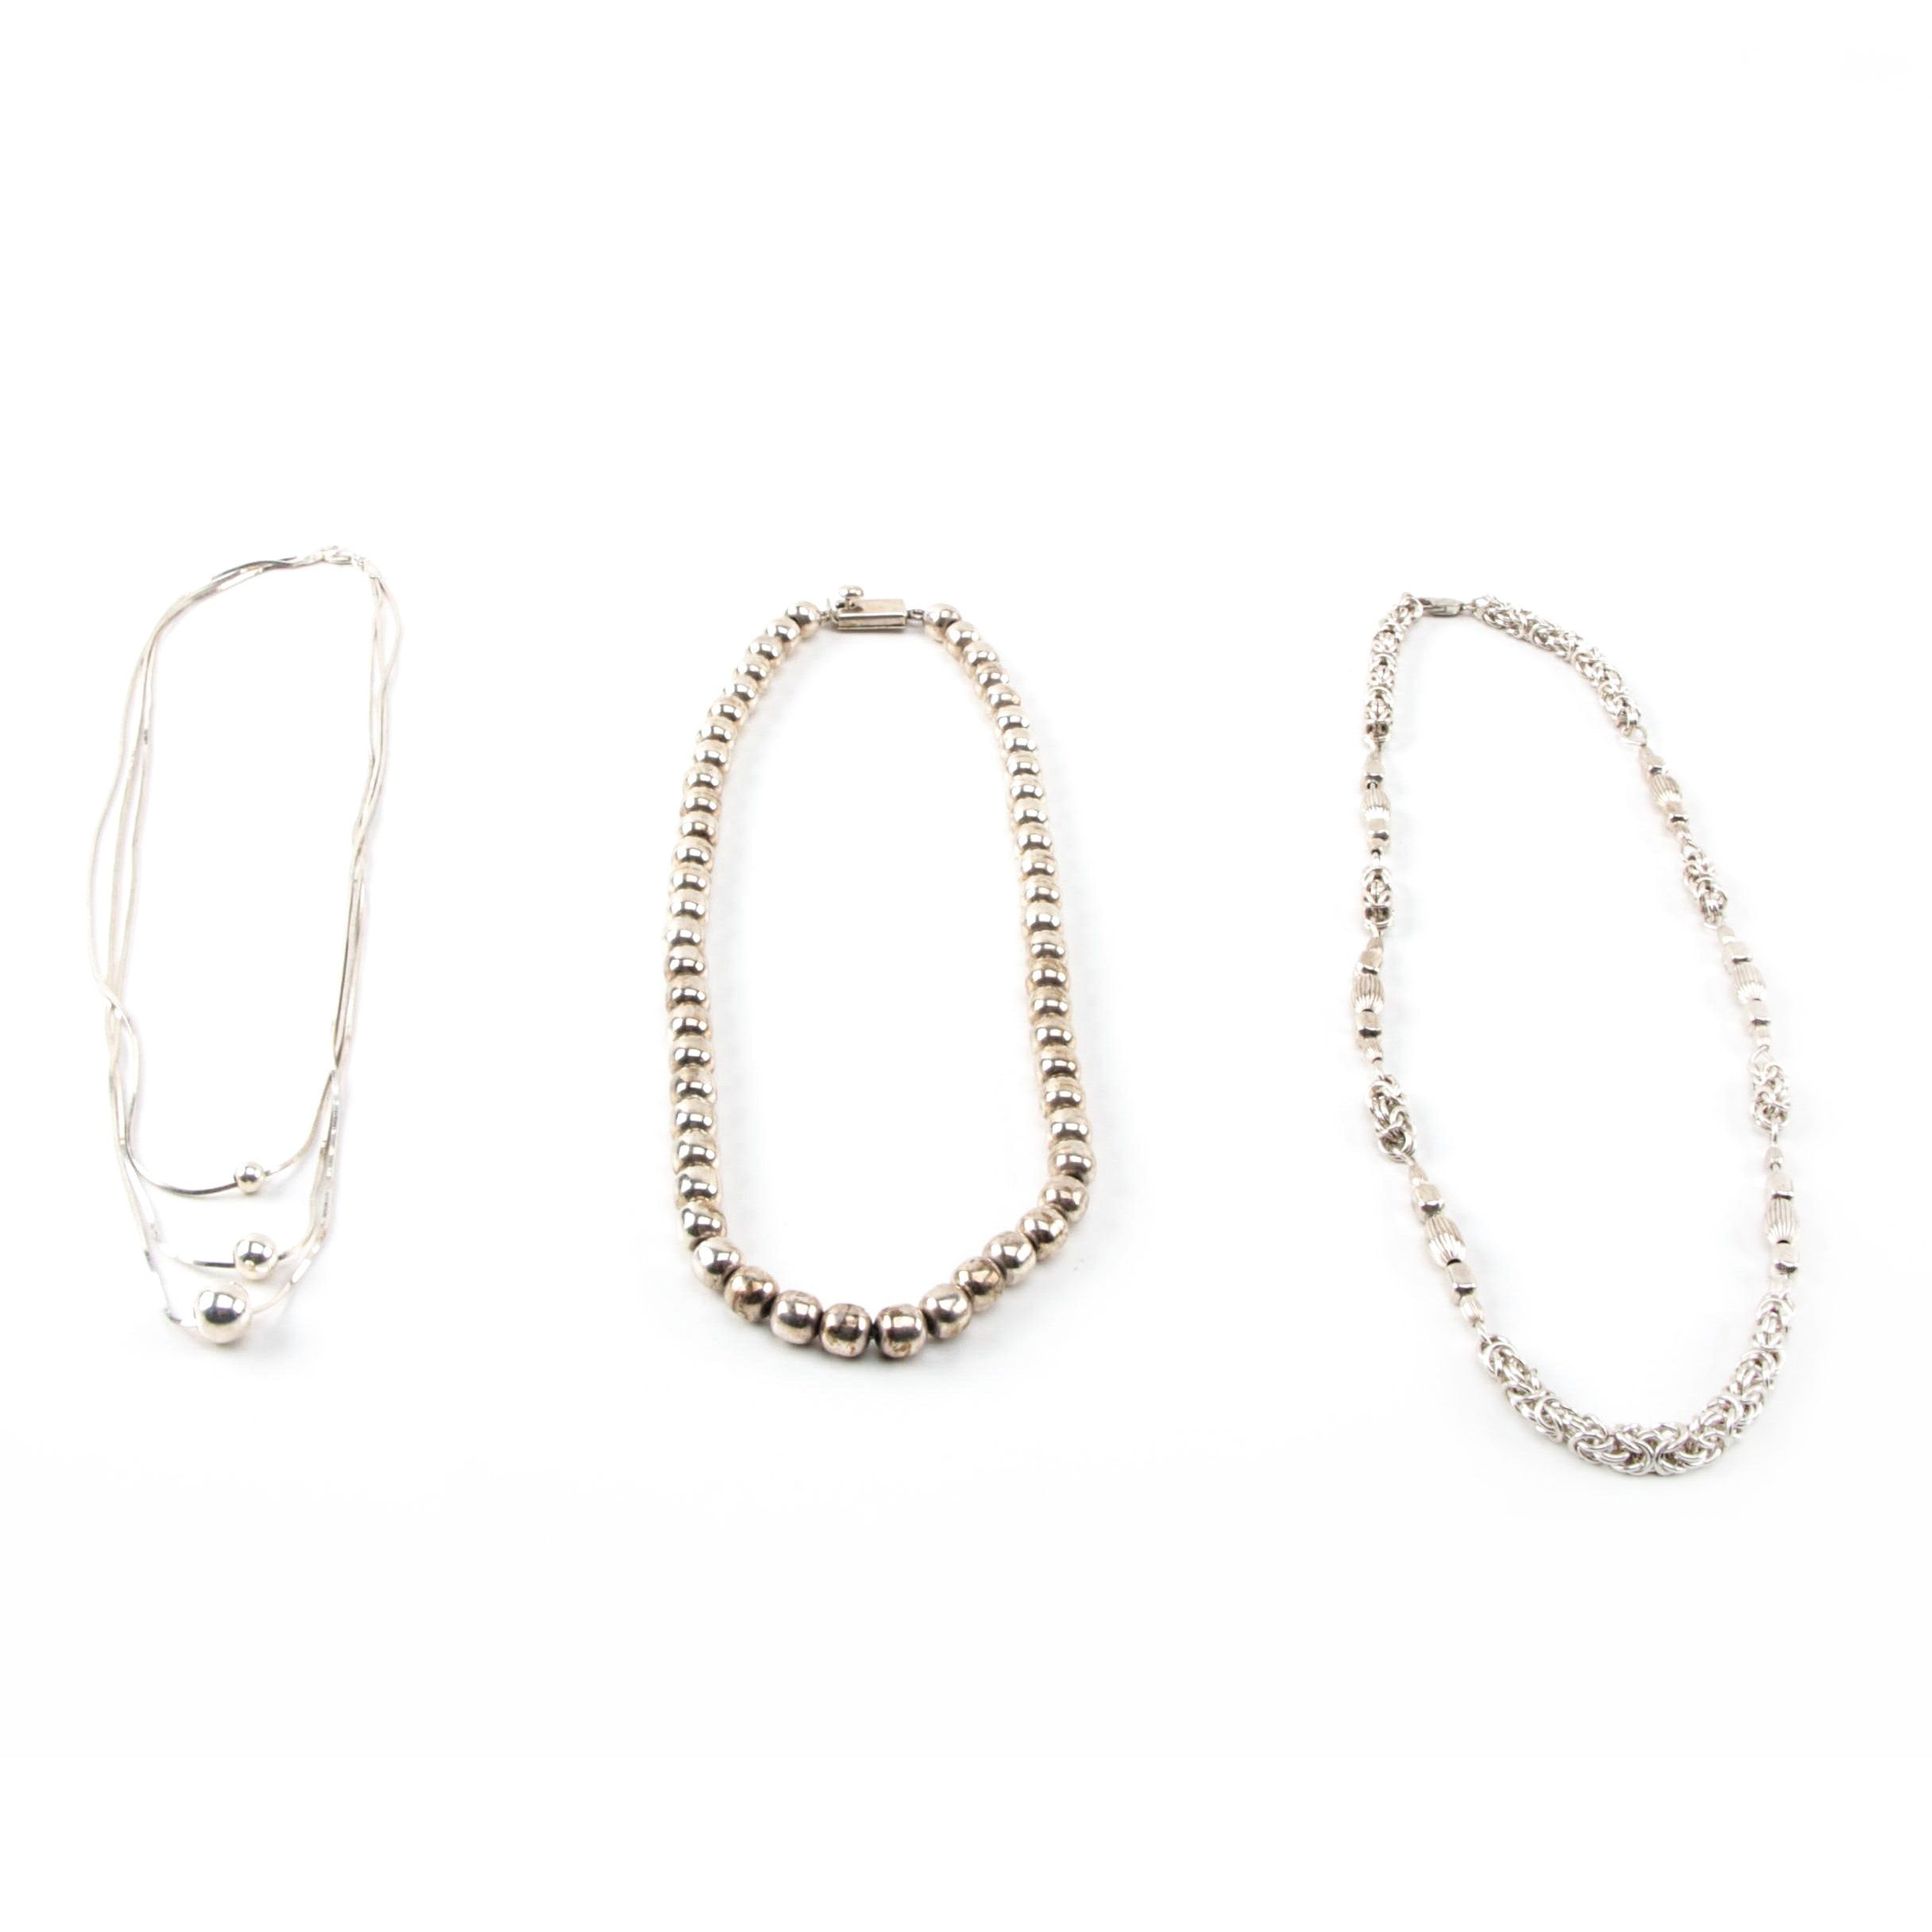 Sterling Silver Necklace Selection